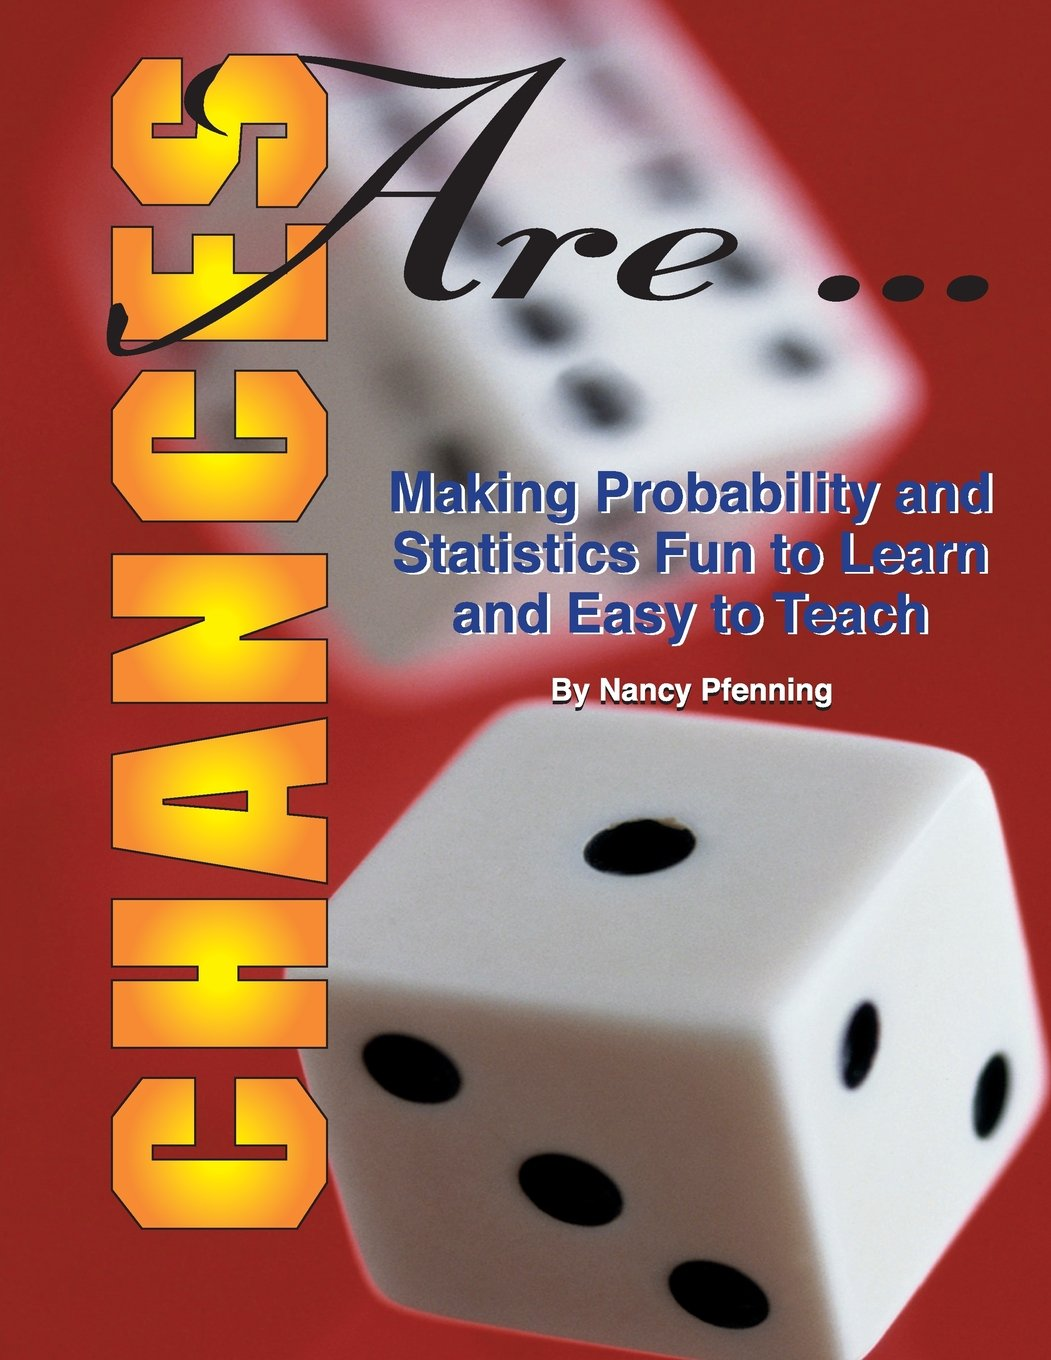 Chances Are: Making Probability and Statistics Fun to Learn and Easy to Teach